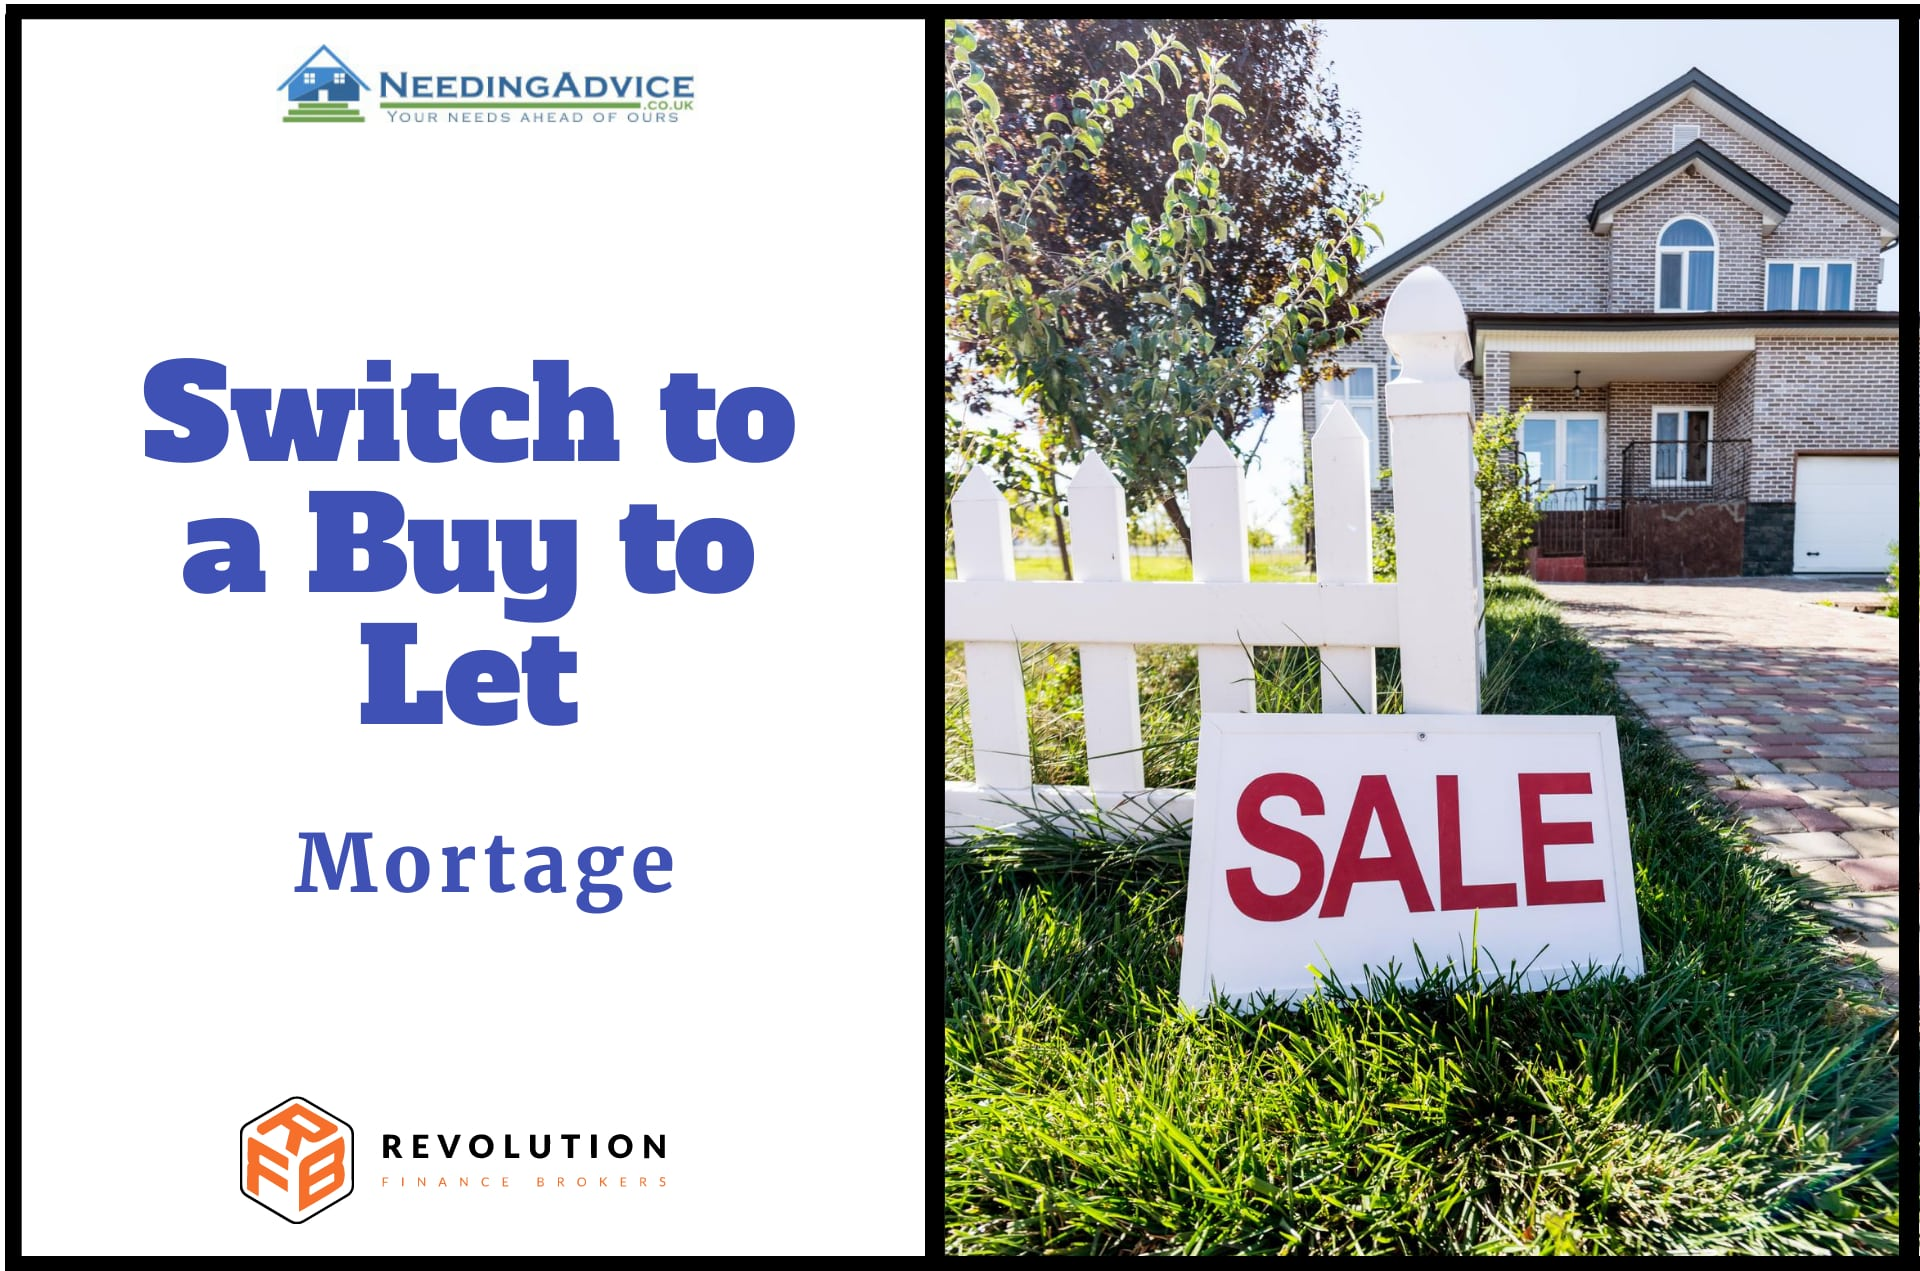 How to Switch to a Buy to Let Mortgage